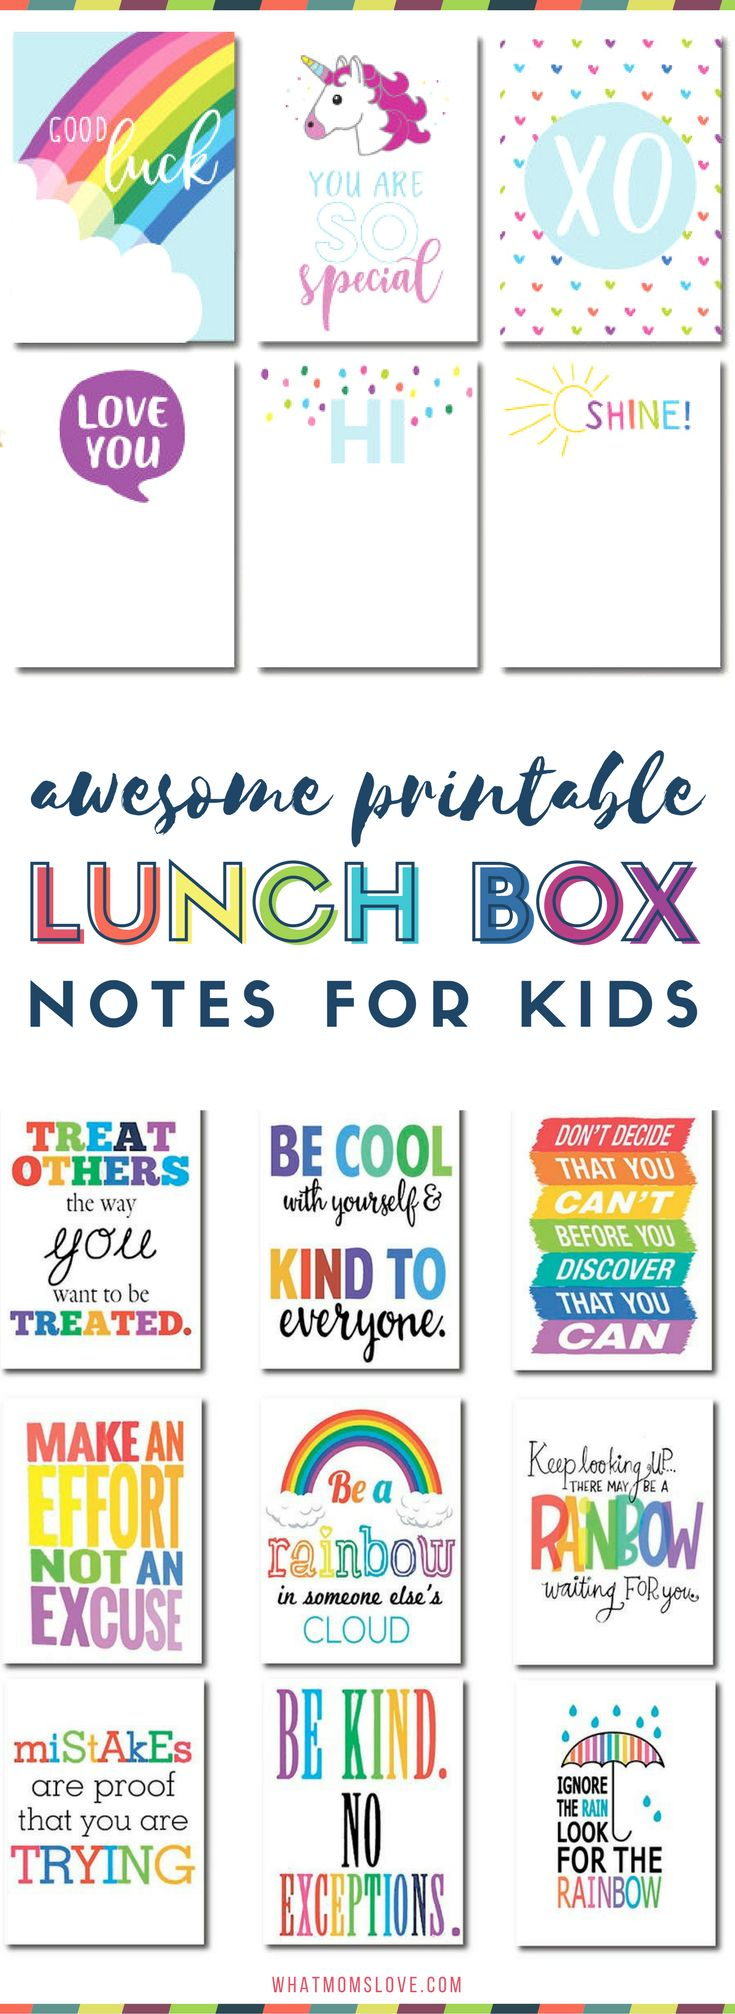 129 best lunch box love notes printables images on pinterest kid